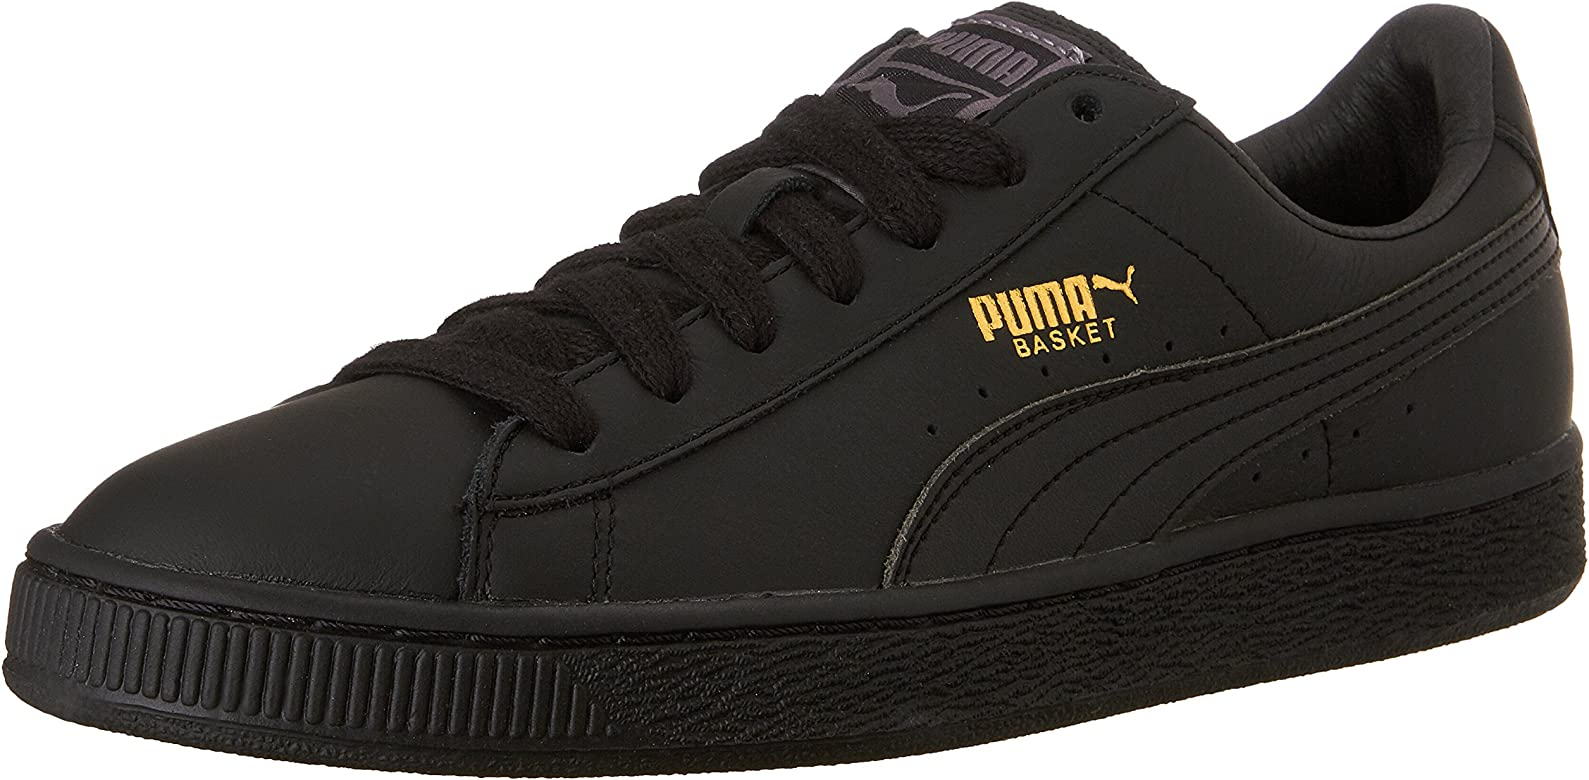 cheaper 310fd 3975c Amazon.com | PUMA Men's Basket Classic LFS Fashion Sneaker ...